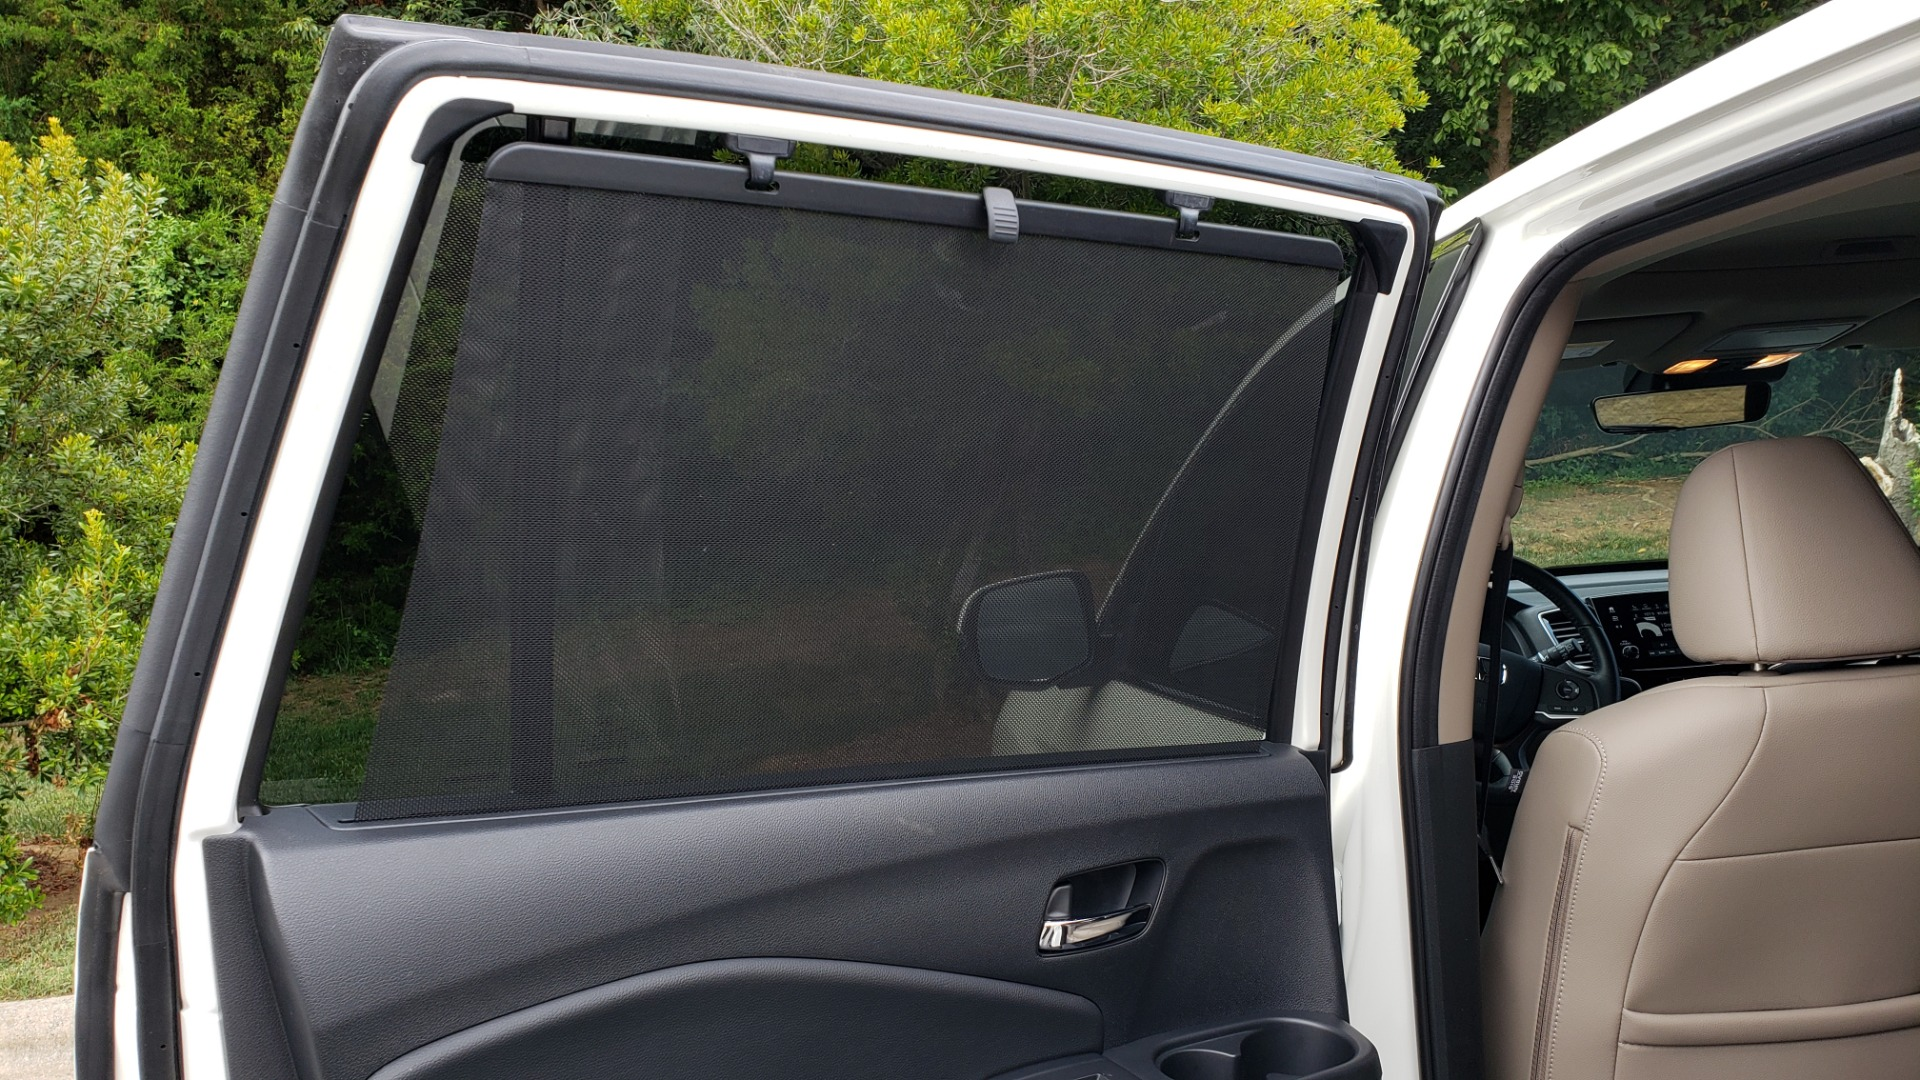 Used 2019 Honda PILOT EX-L / V6 / NAV / SUNROOF / DVD / 3-ROW / REARVIEW for sale Sold at Formula Imports in Charlotte NC 28227 63